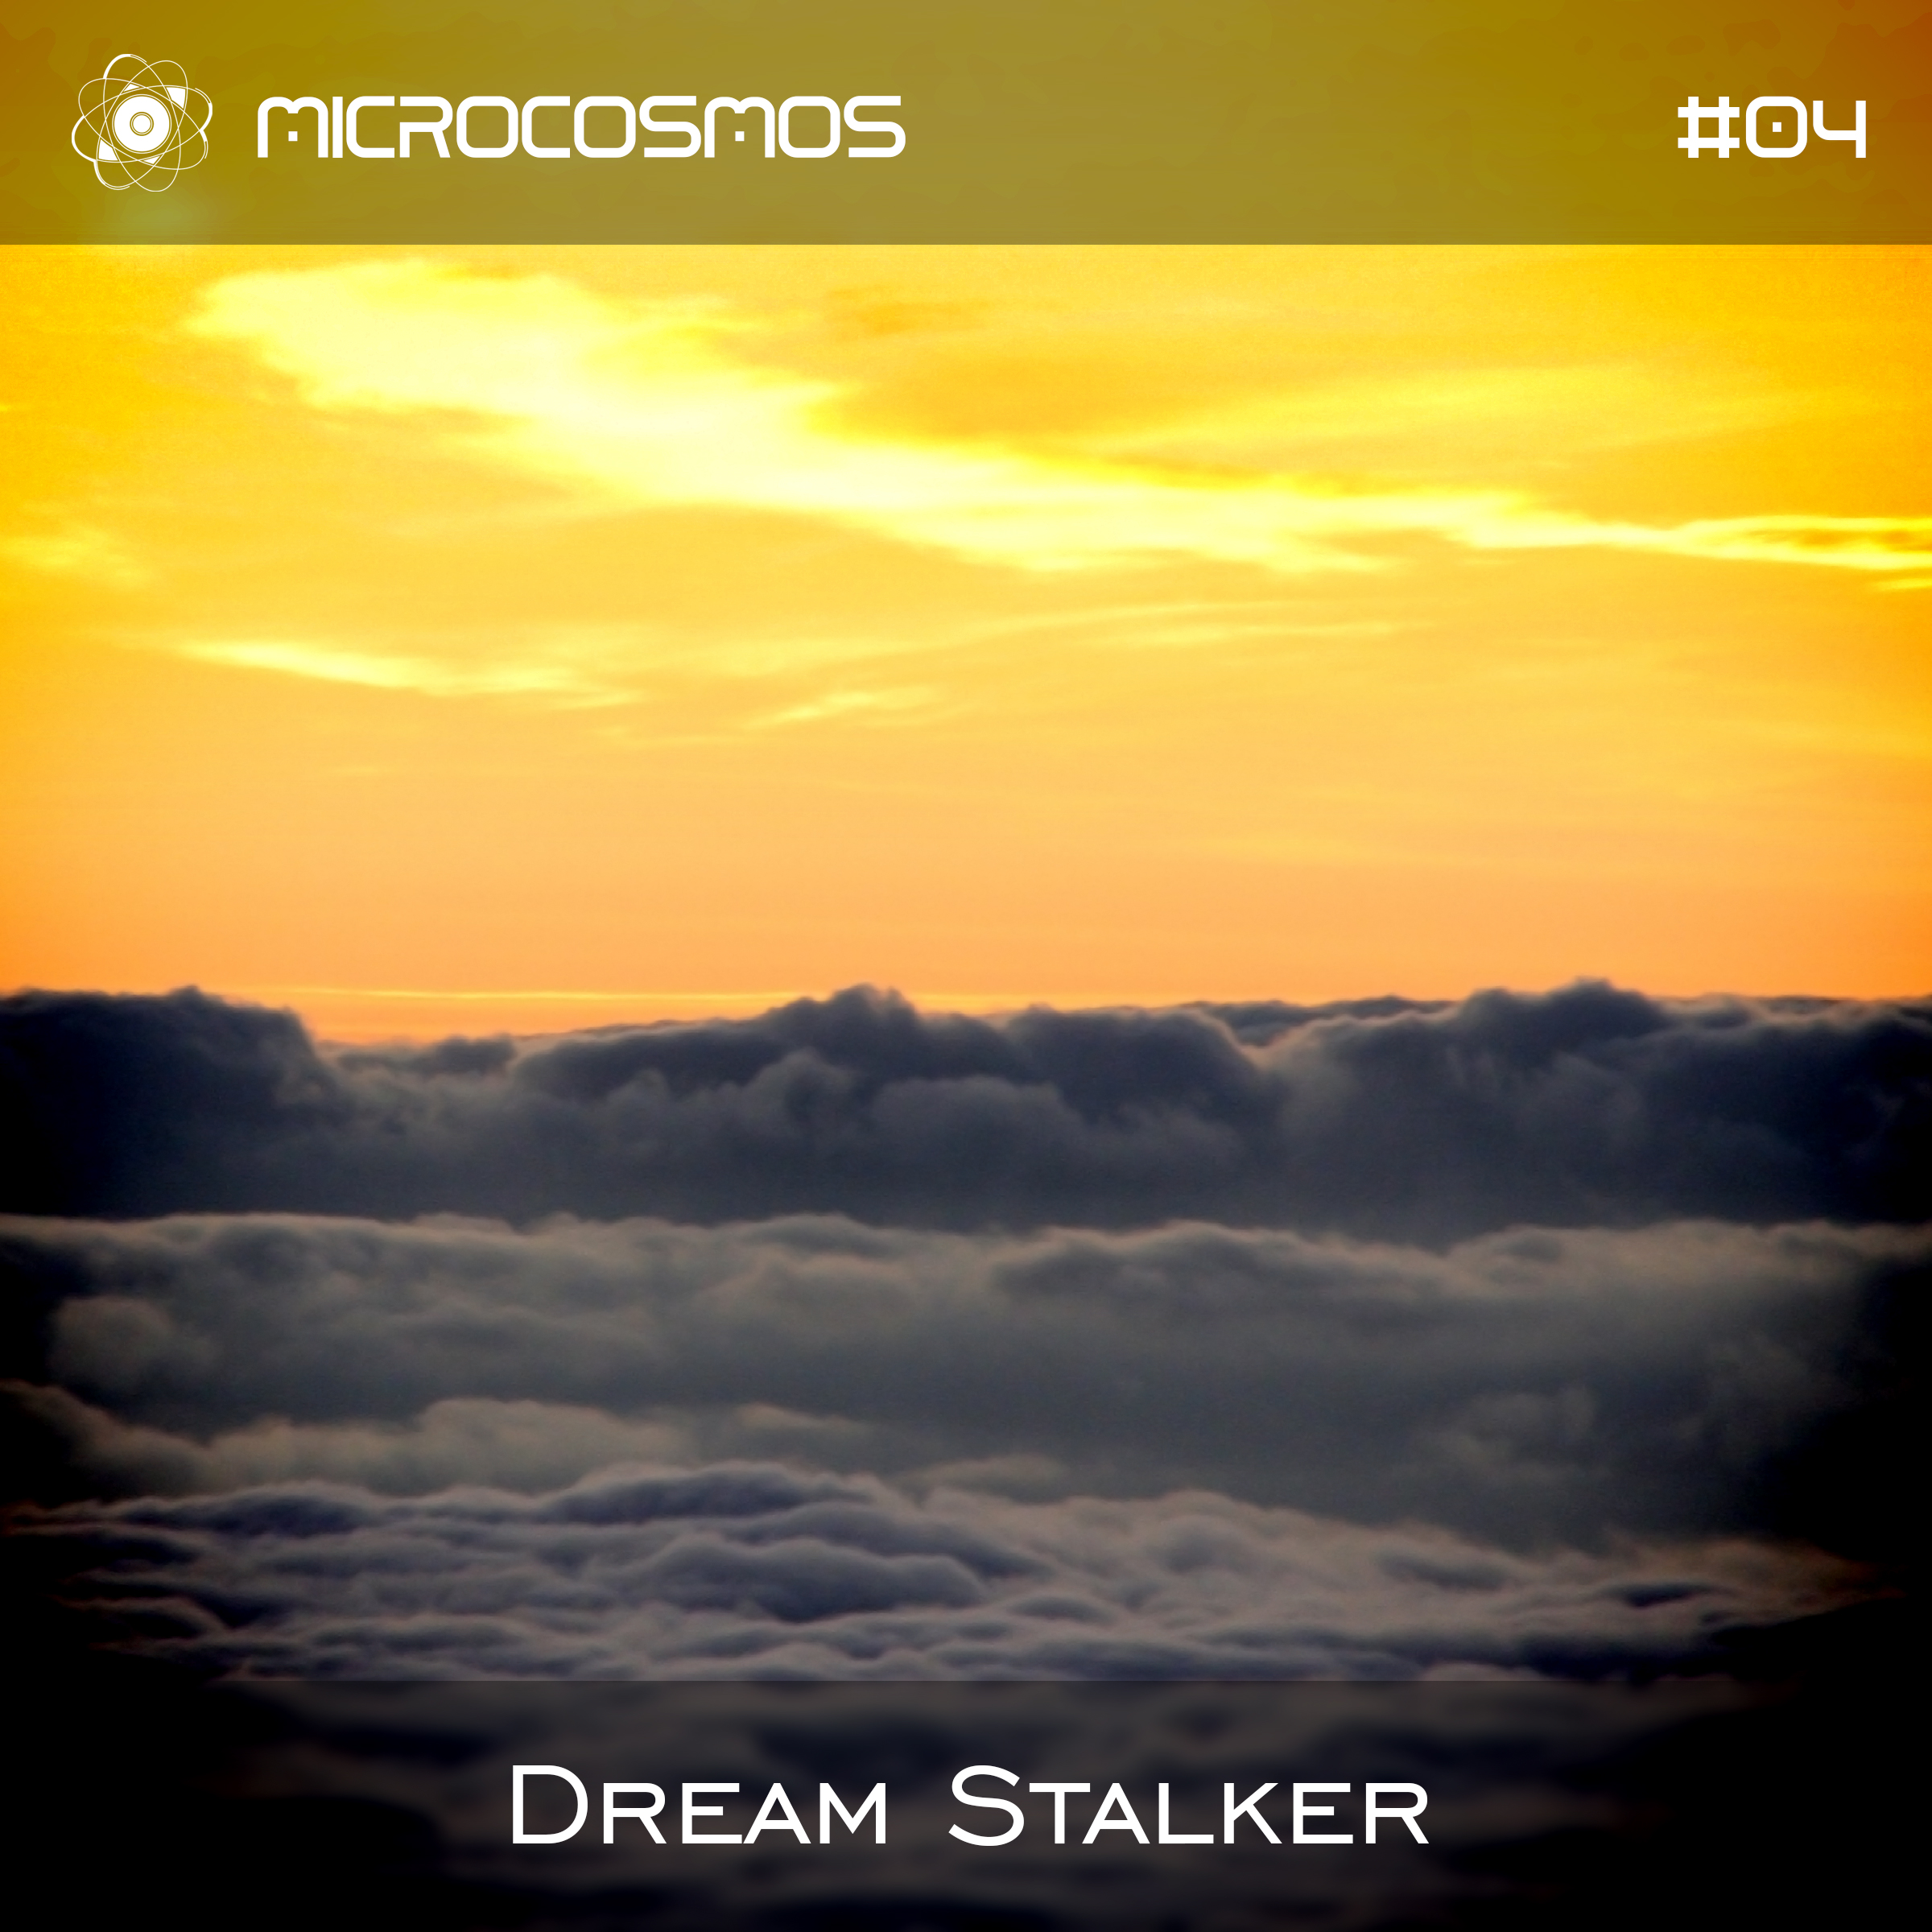 Dream Stalker – Microcosmos Chillout & Ambient Podcast 004